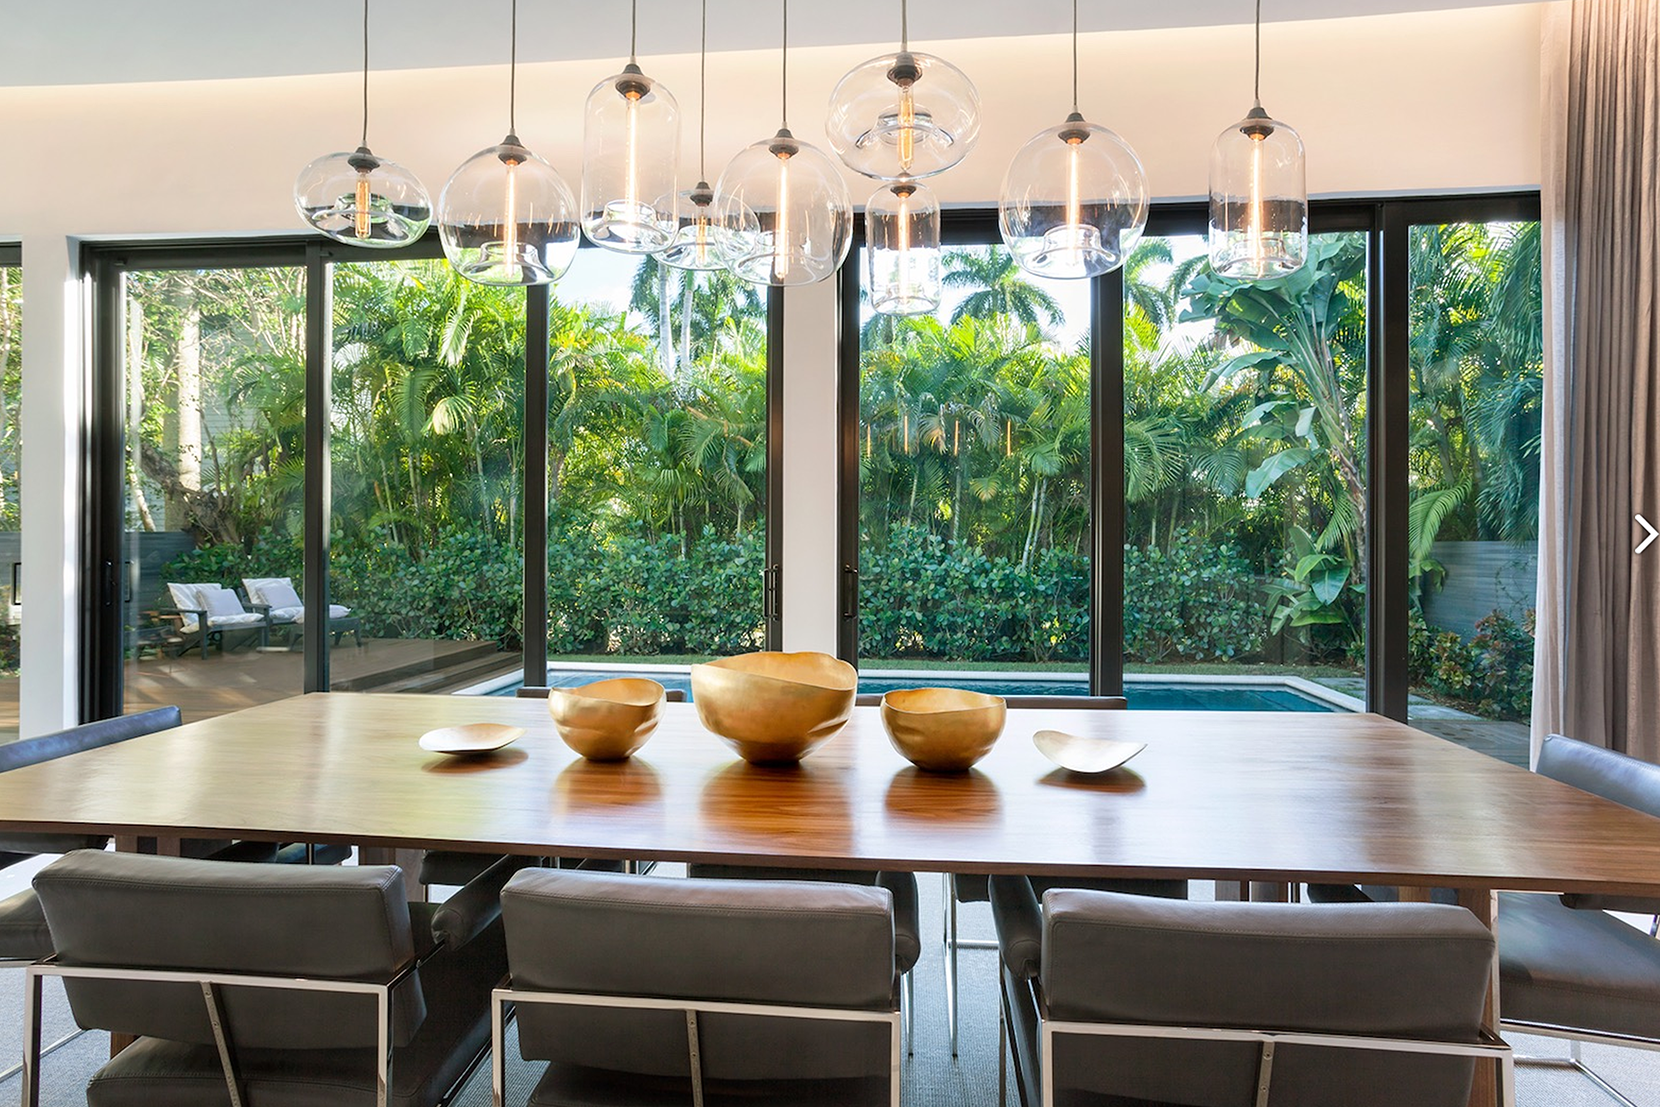 https://www.nichemodern.com/hs-fs/hubfs/Niche_COS/Pages/Modern_Lighting_Projects/Dining-Room-Lighting/Lighting-Project-Pages_0006s_0006_Modern-Dining-Room-Pendant-Lighting.png?t=1532050848376&width=1660&name=Lighting-Project-Pages_0006s_0006_Modern-Dining-Room-Pendant-Lighting.png